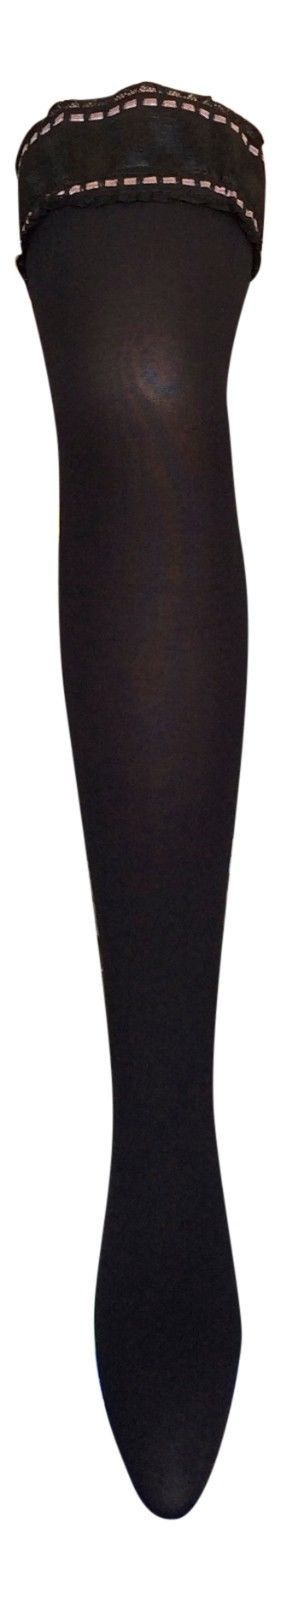 Ladies 50 Denier Opaque Black Plain Top Fashion Over Knee Hold Ups Stockings